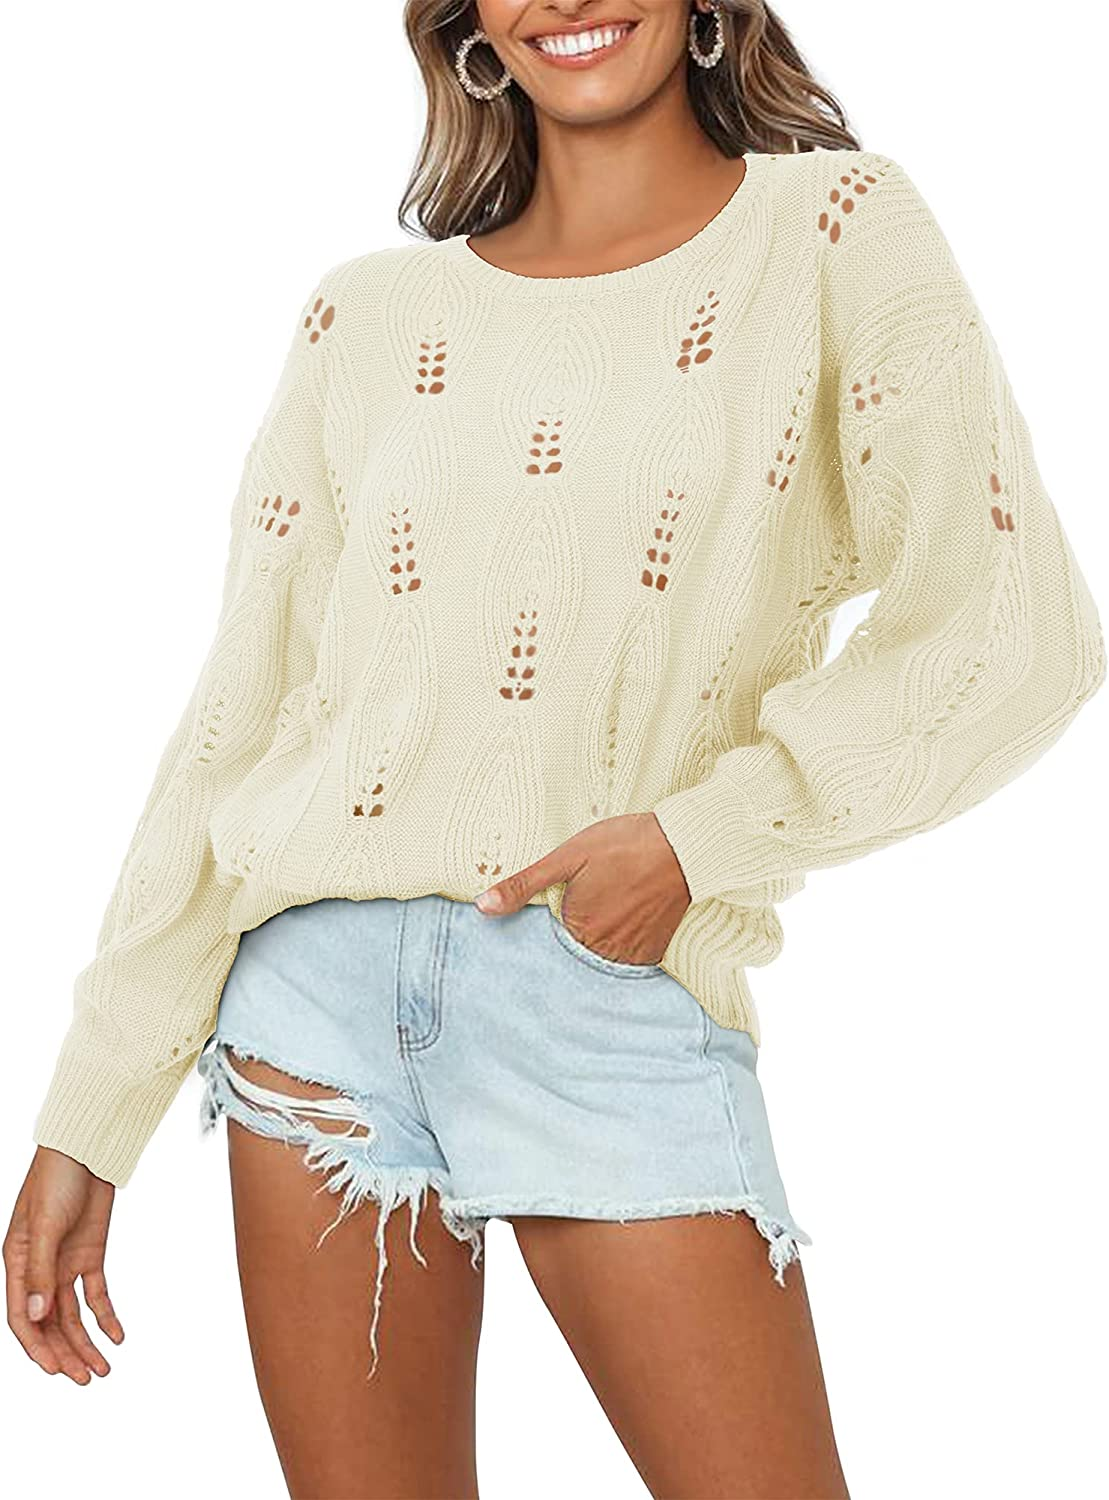 OUGES Women's Sweater Casual Crewneck Long Sleeve Cable Knit Tops Loose Pullover